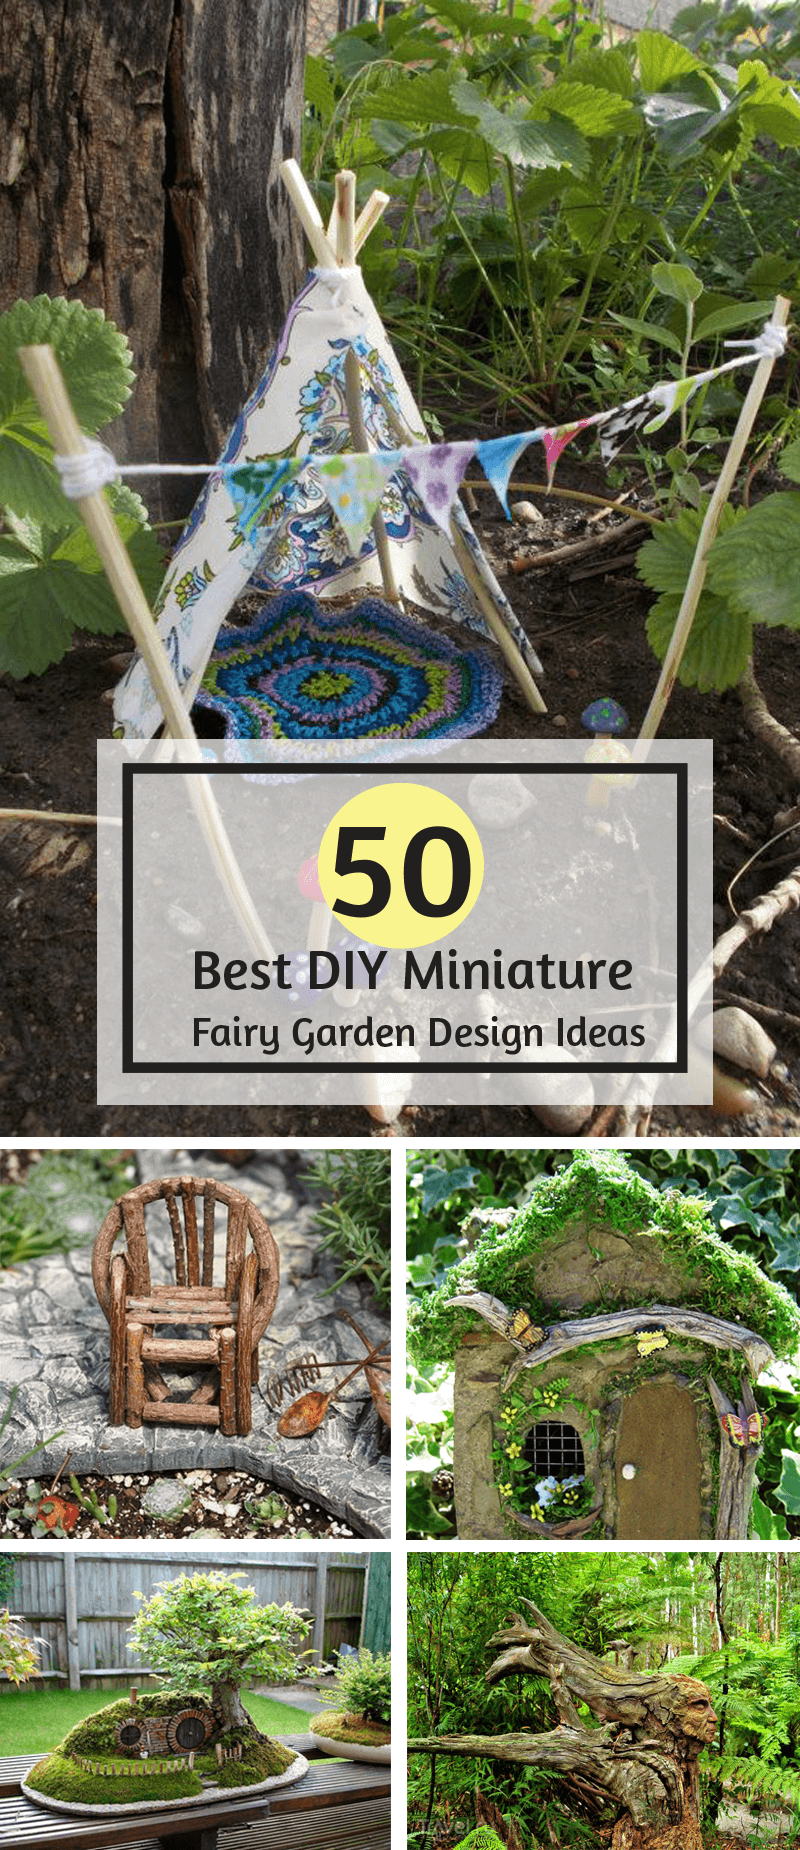 50 Diy Miniature Fairy Garden Design Ideas Interiorsherpa